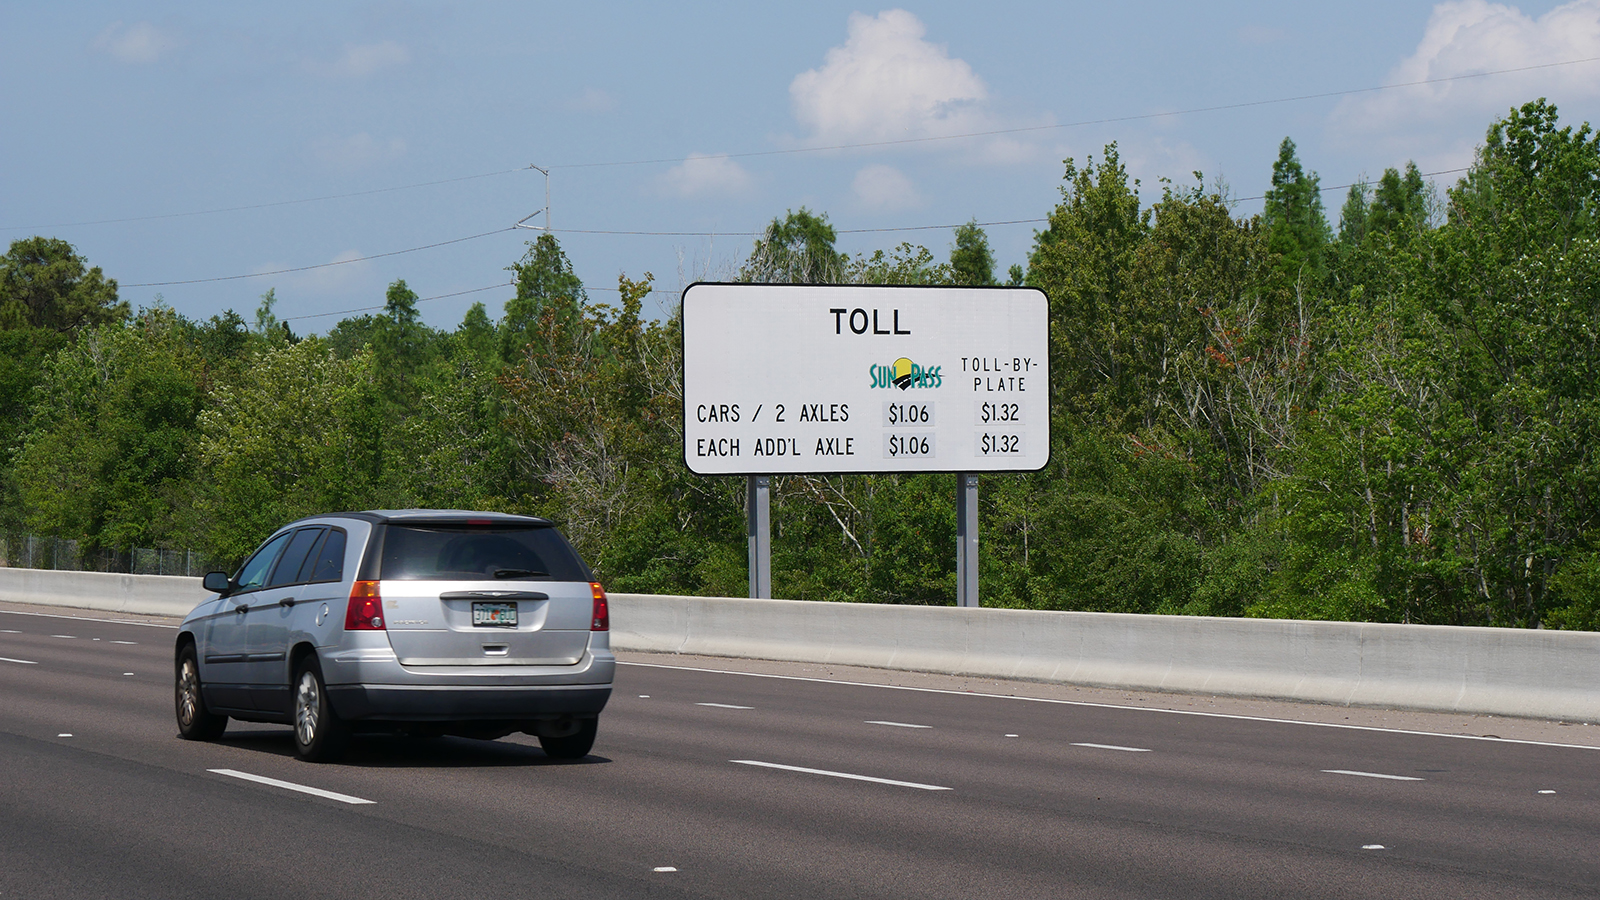 Toll By Plate Image